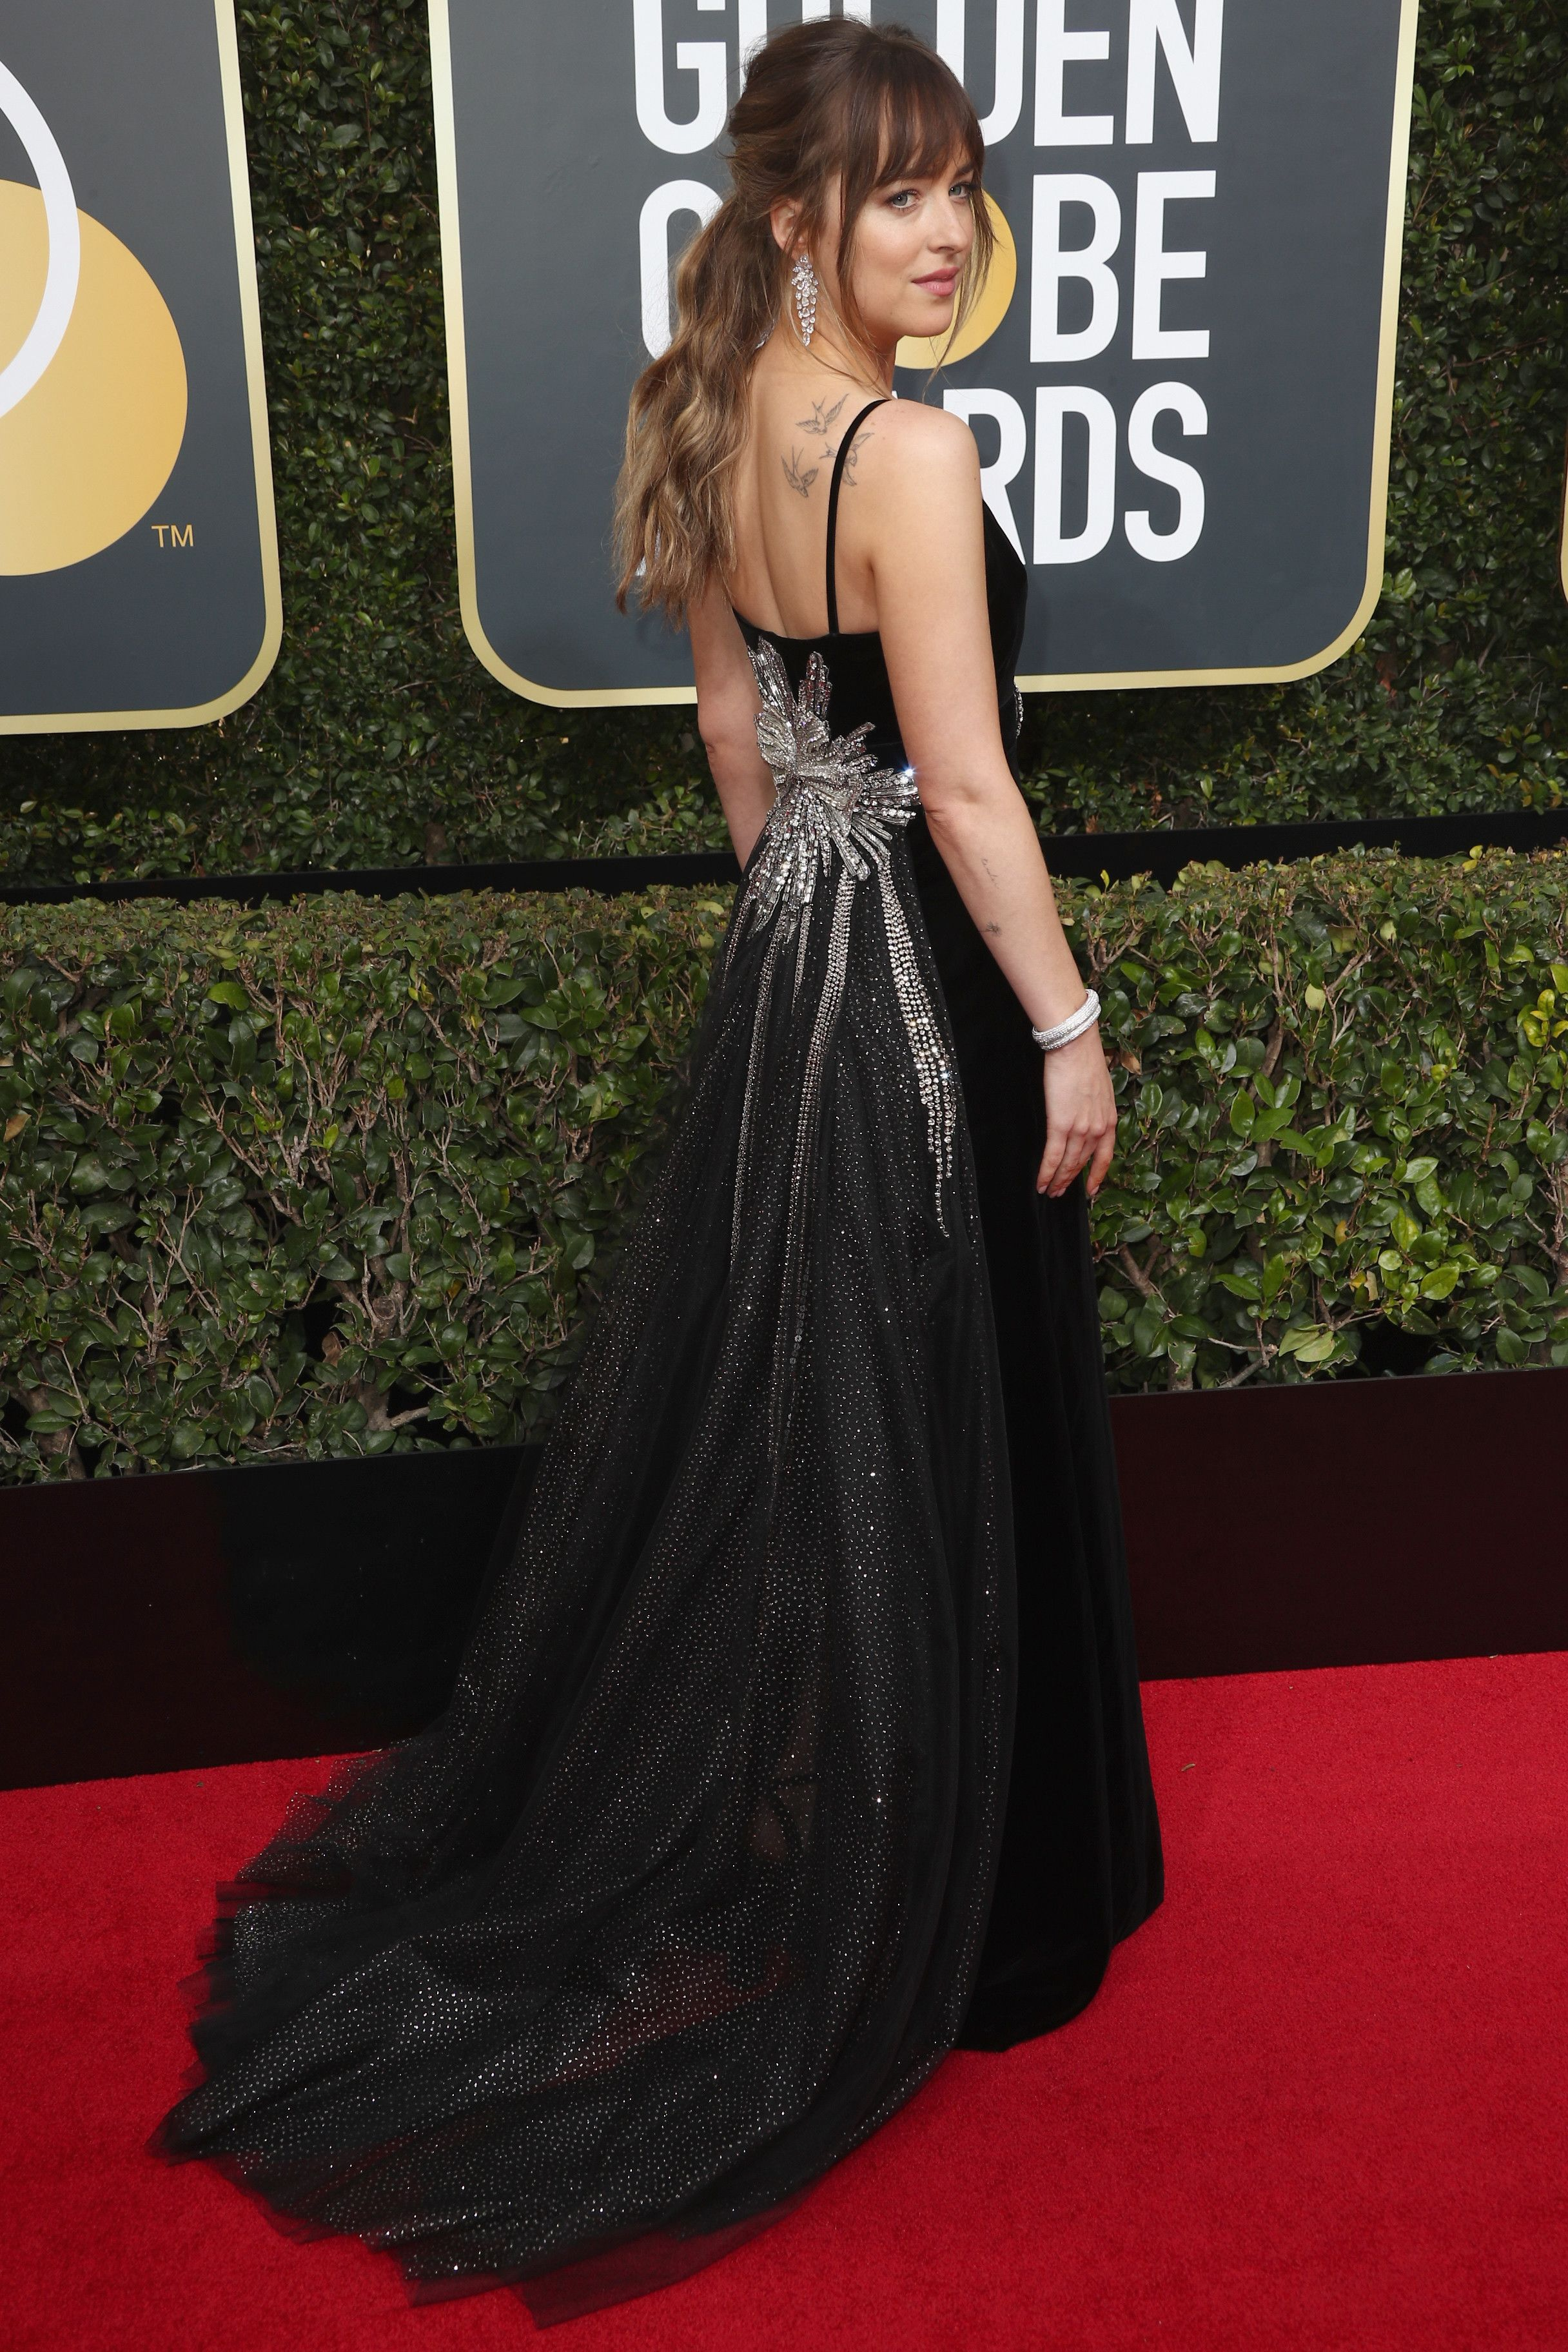 Black dresses ruled the red carpet this year. Dakota Johnson in Gucci -  Every Single Look from the 2018 Golden Globe Awards - Photos af115ea731e6